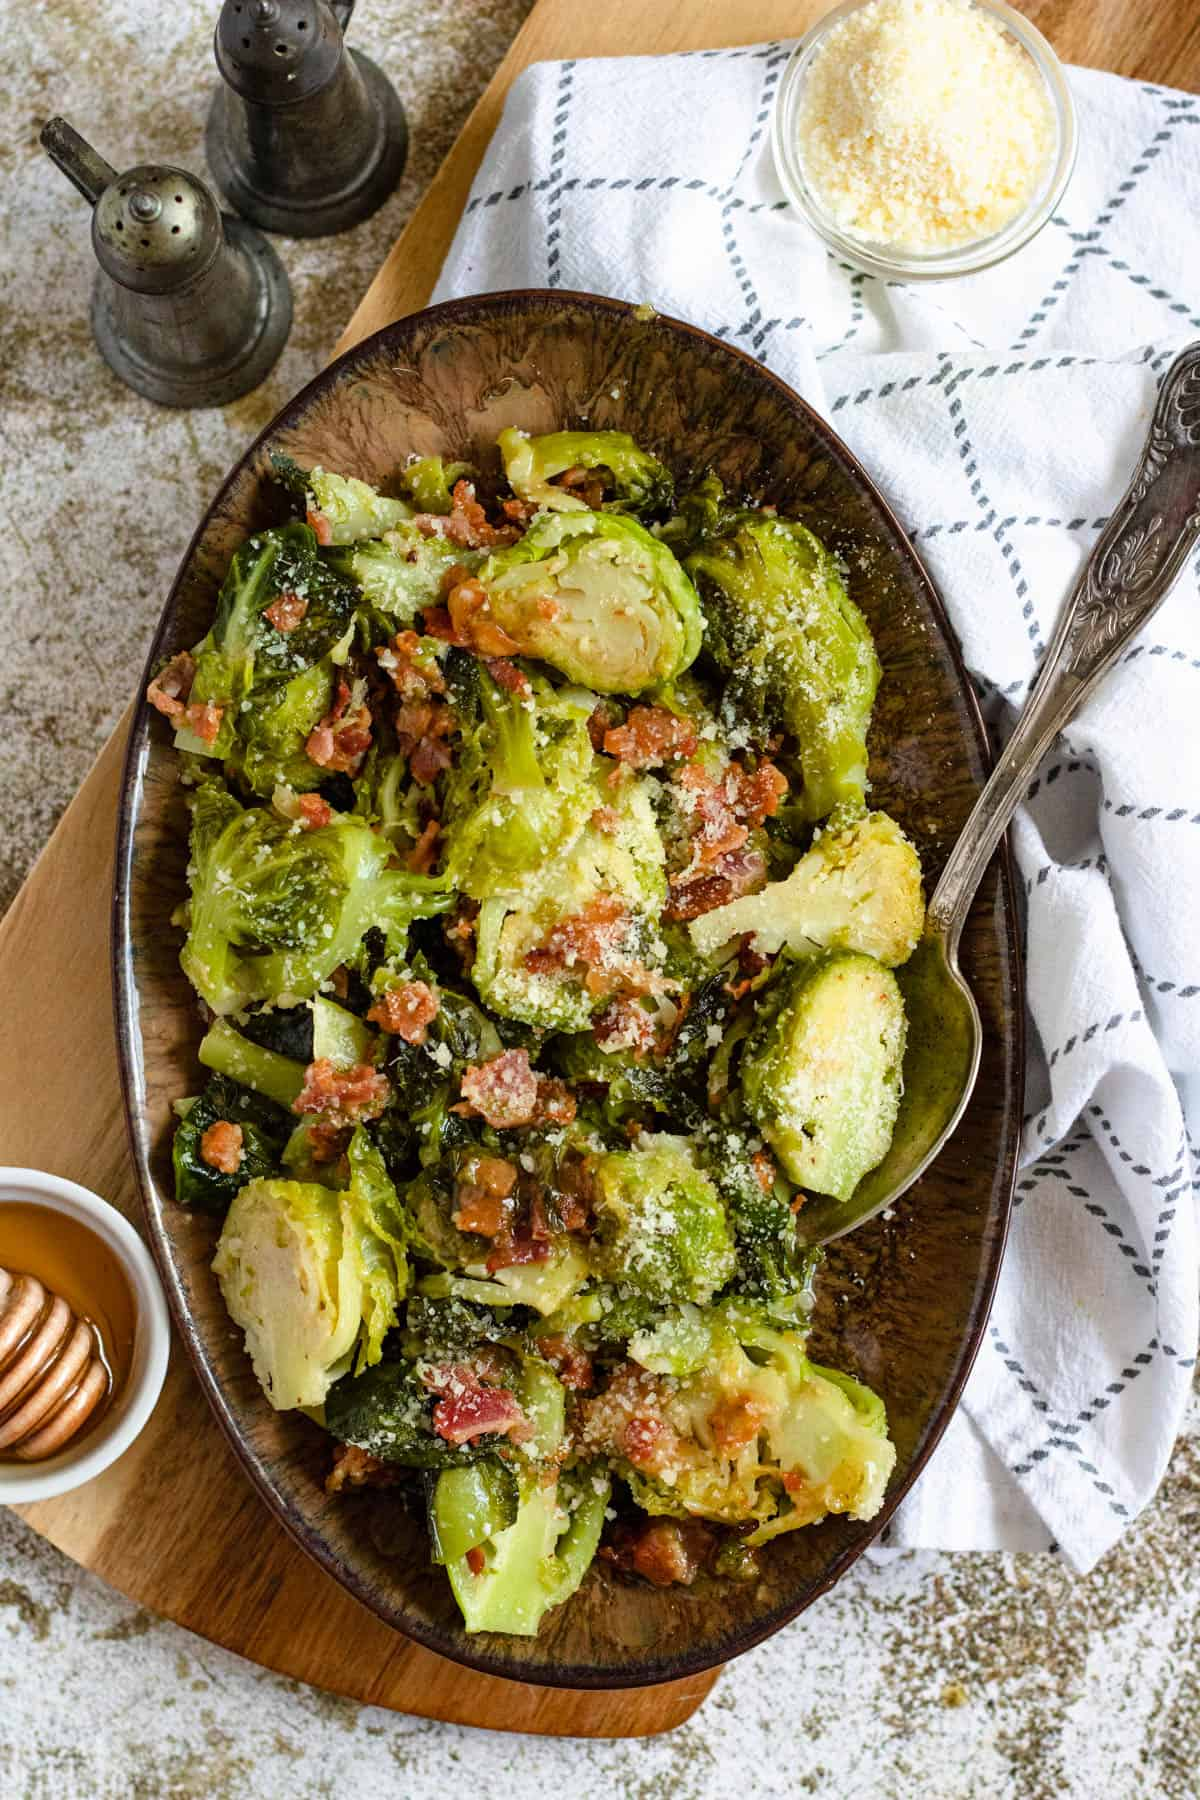 Bowl of Brussels sprouts with parmesan and a spoon